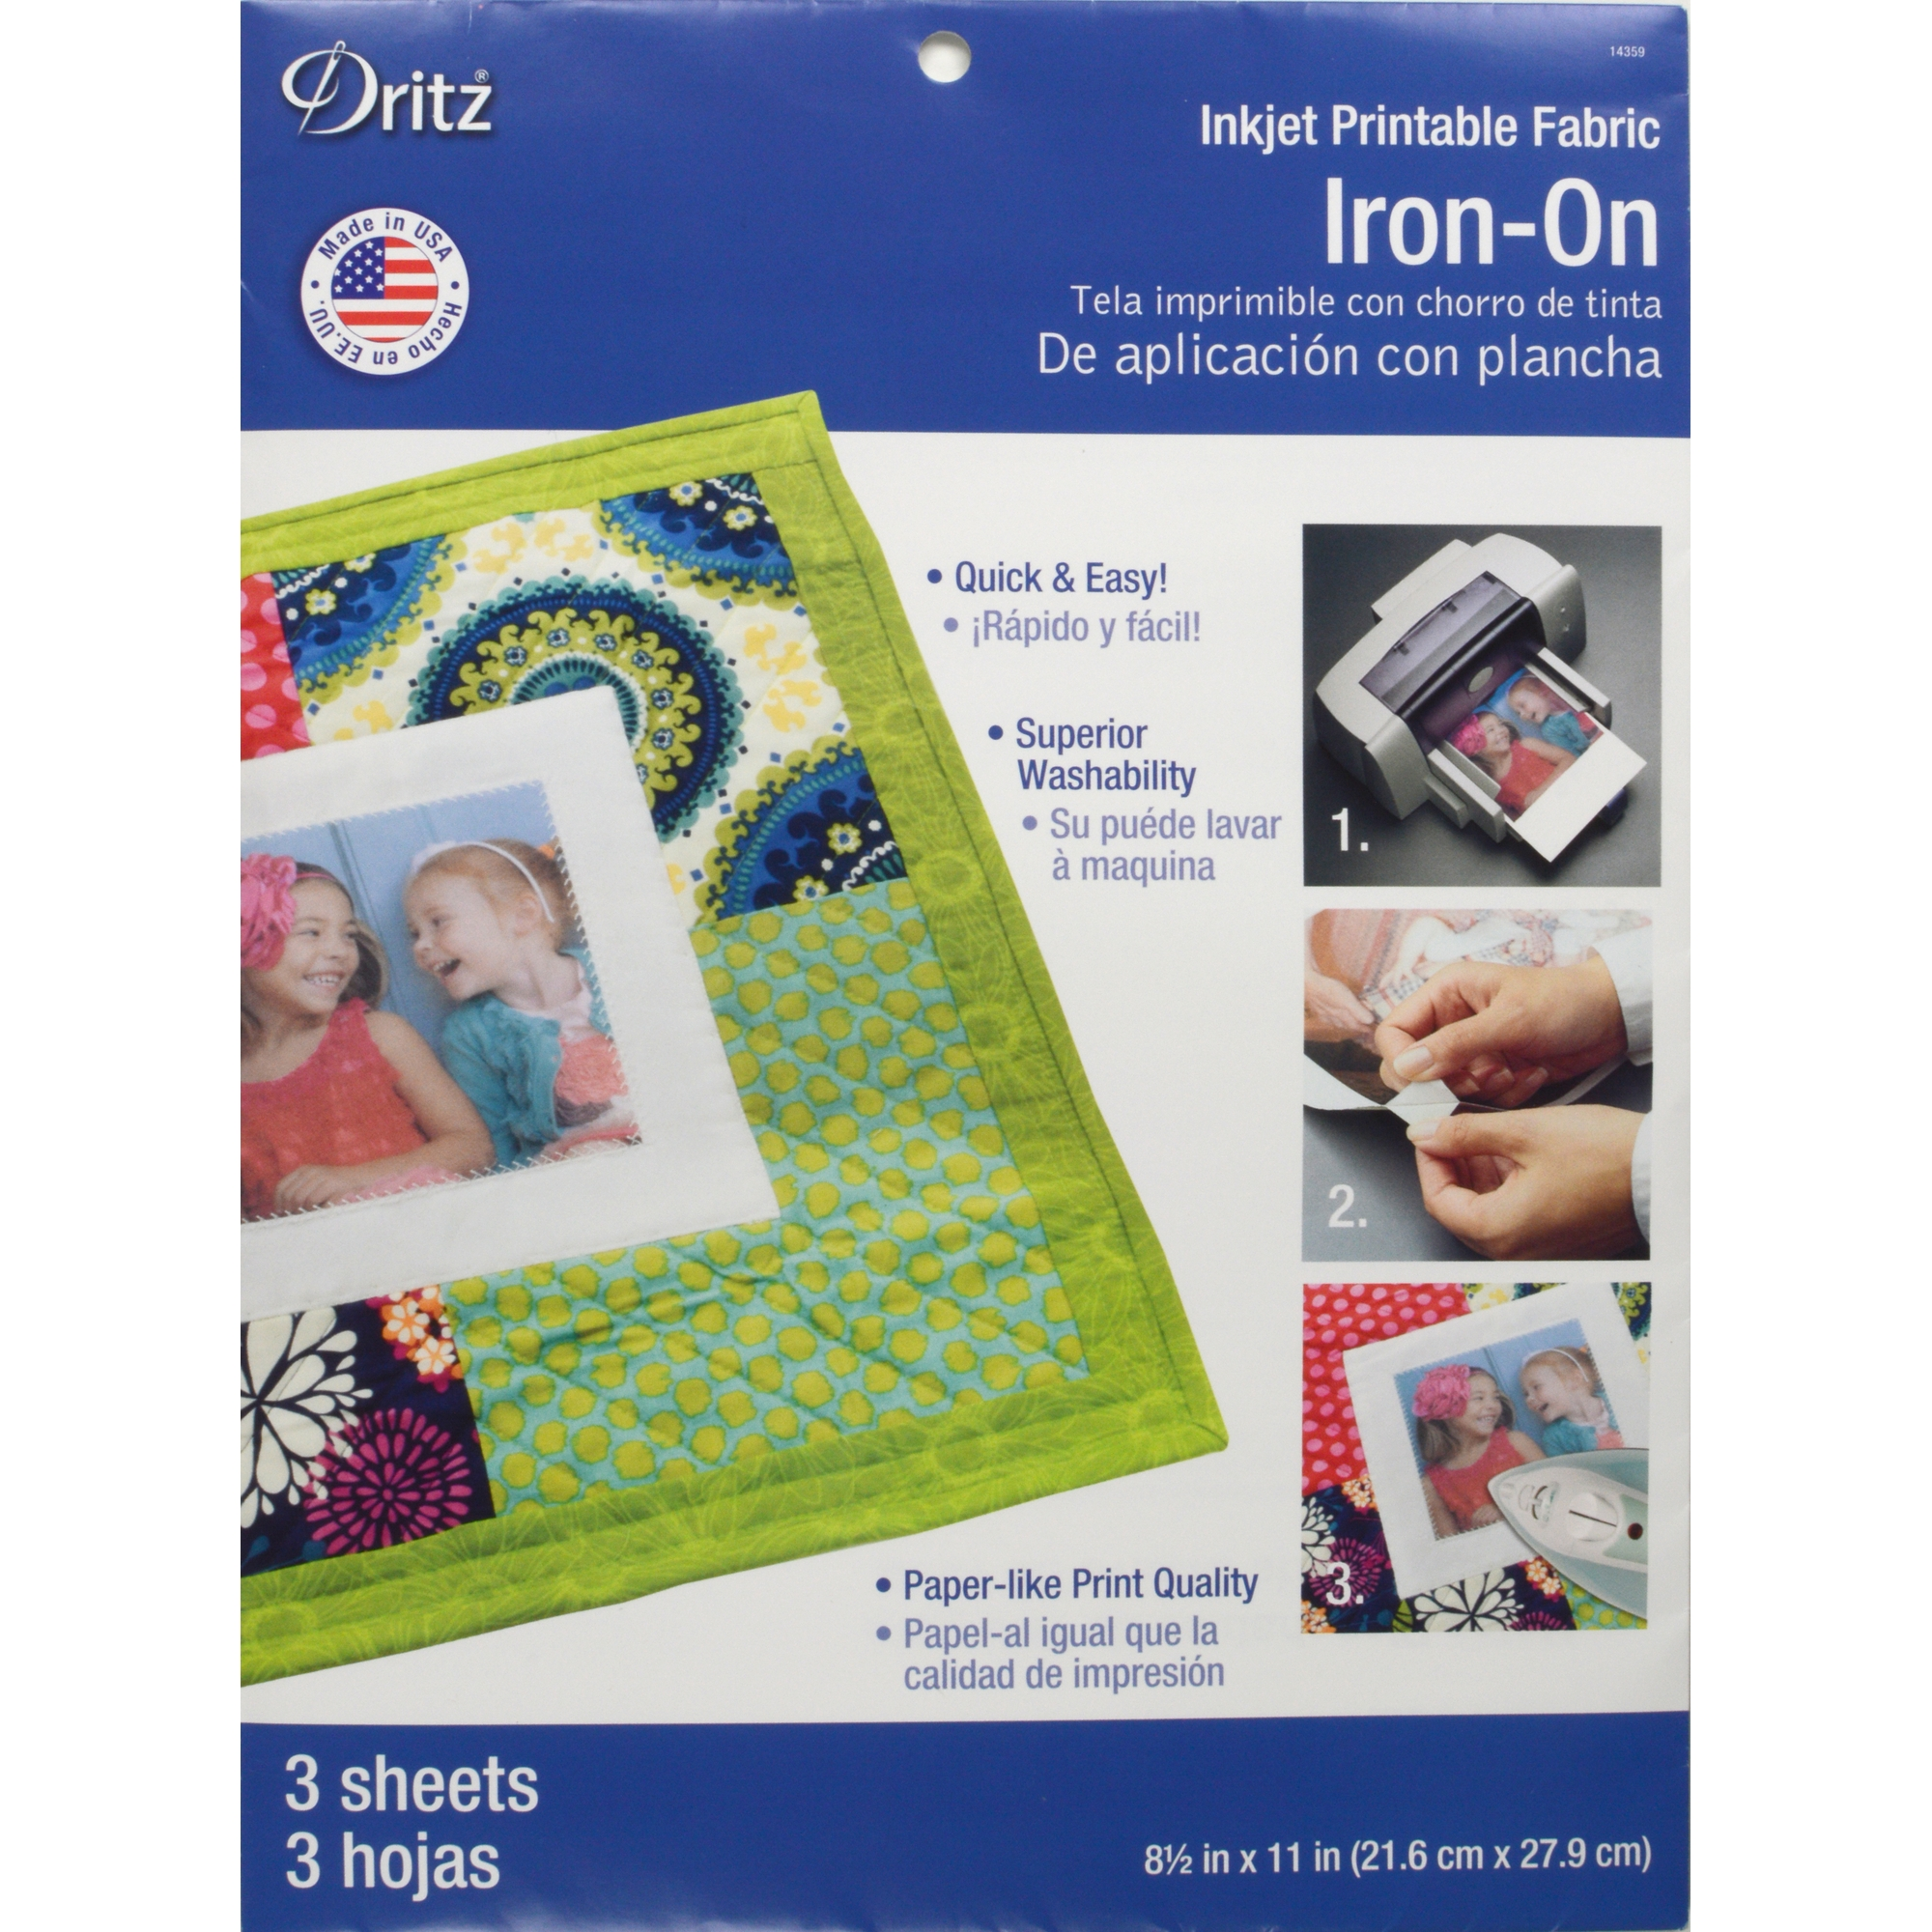 graphic about Inkjet Printable Fabric named Dritz Inkjet Printable Cloth Iron-Upon Sheets, 3 Depend